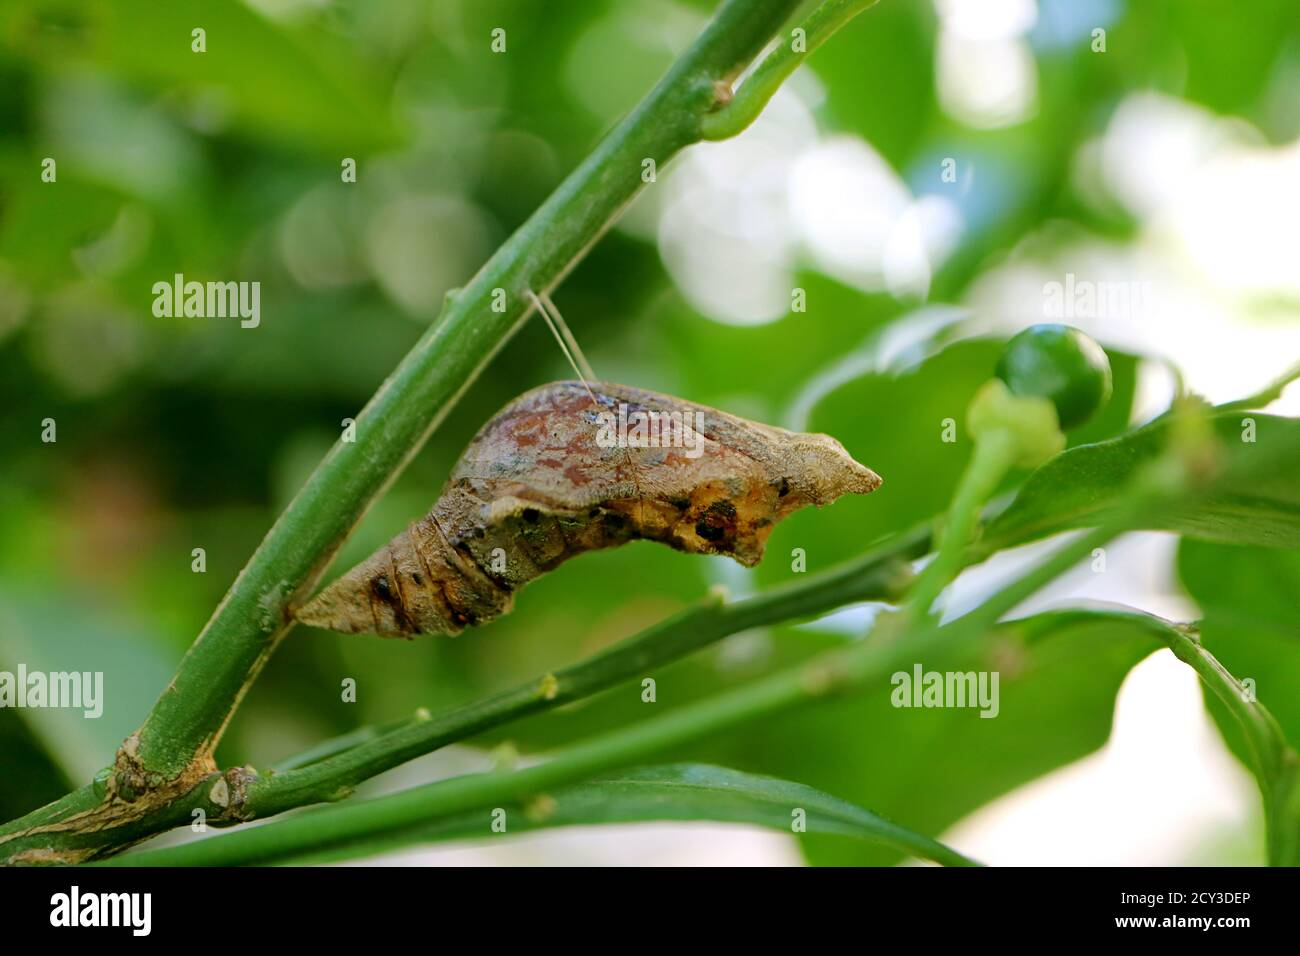 Lime Butterfly Pupa Suspended under a Branch of the Lime Tree Stock Photo